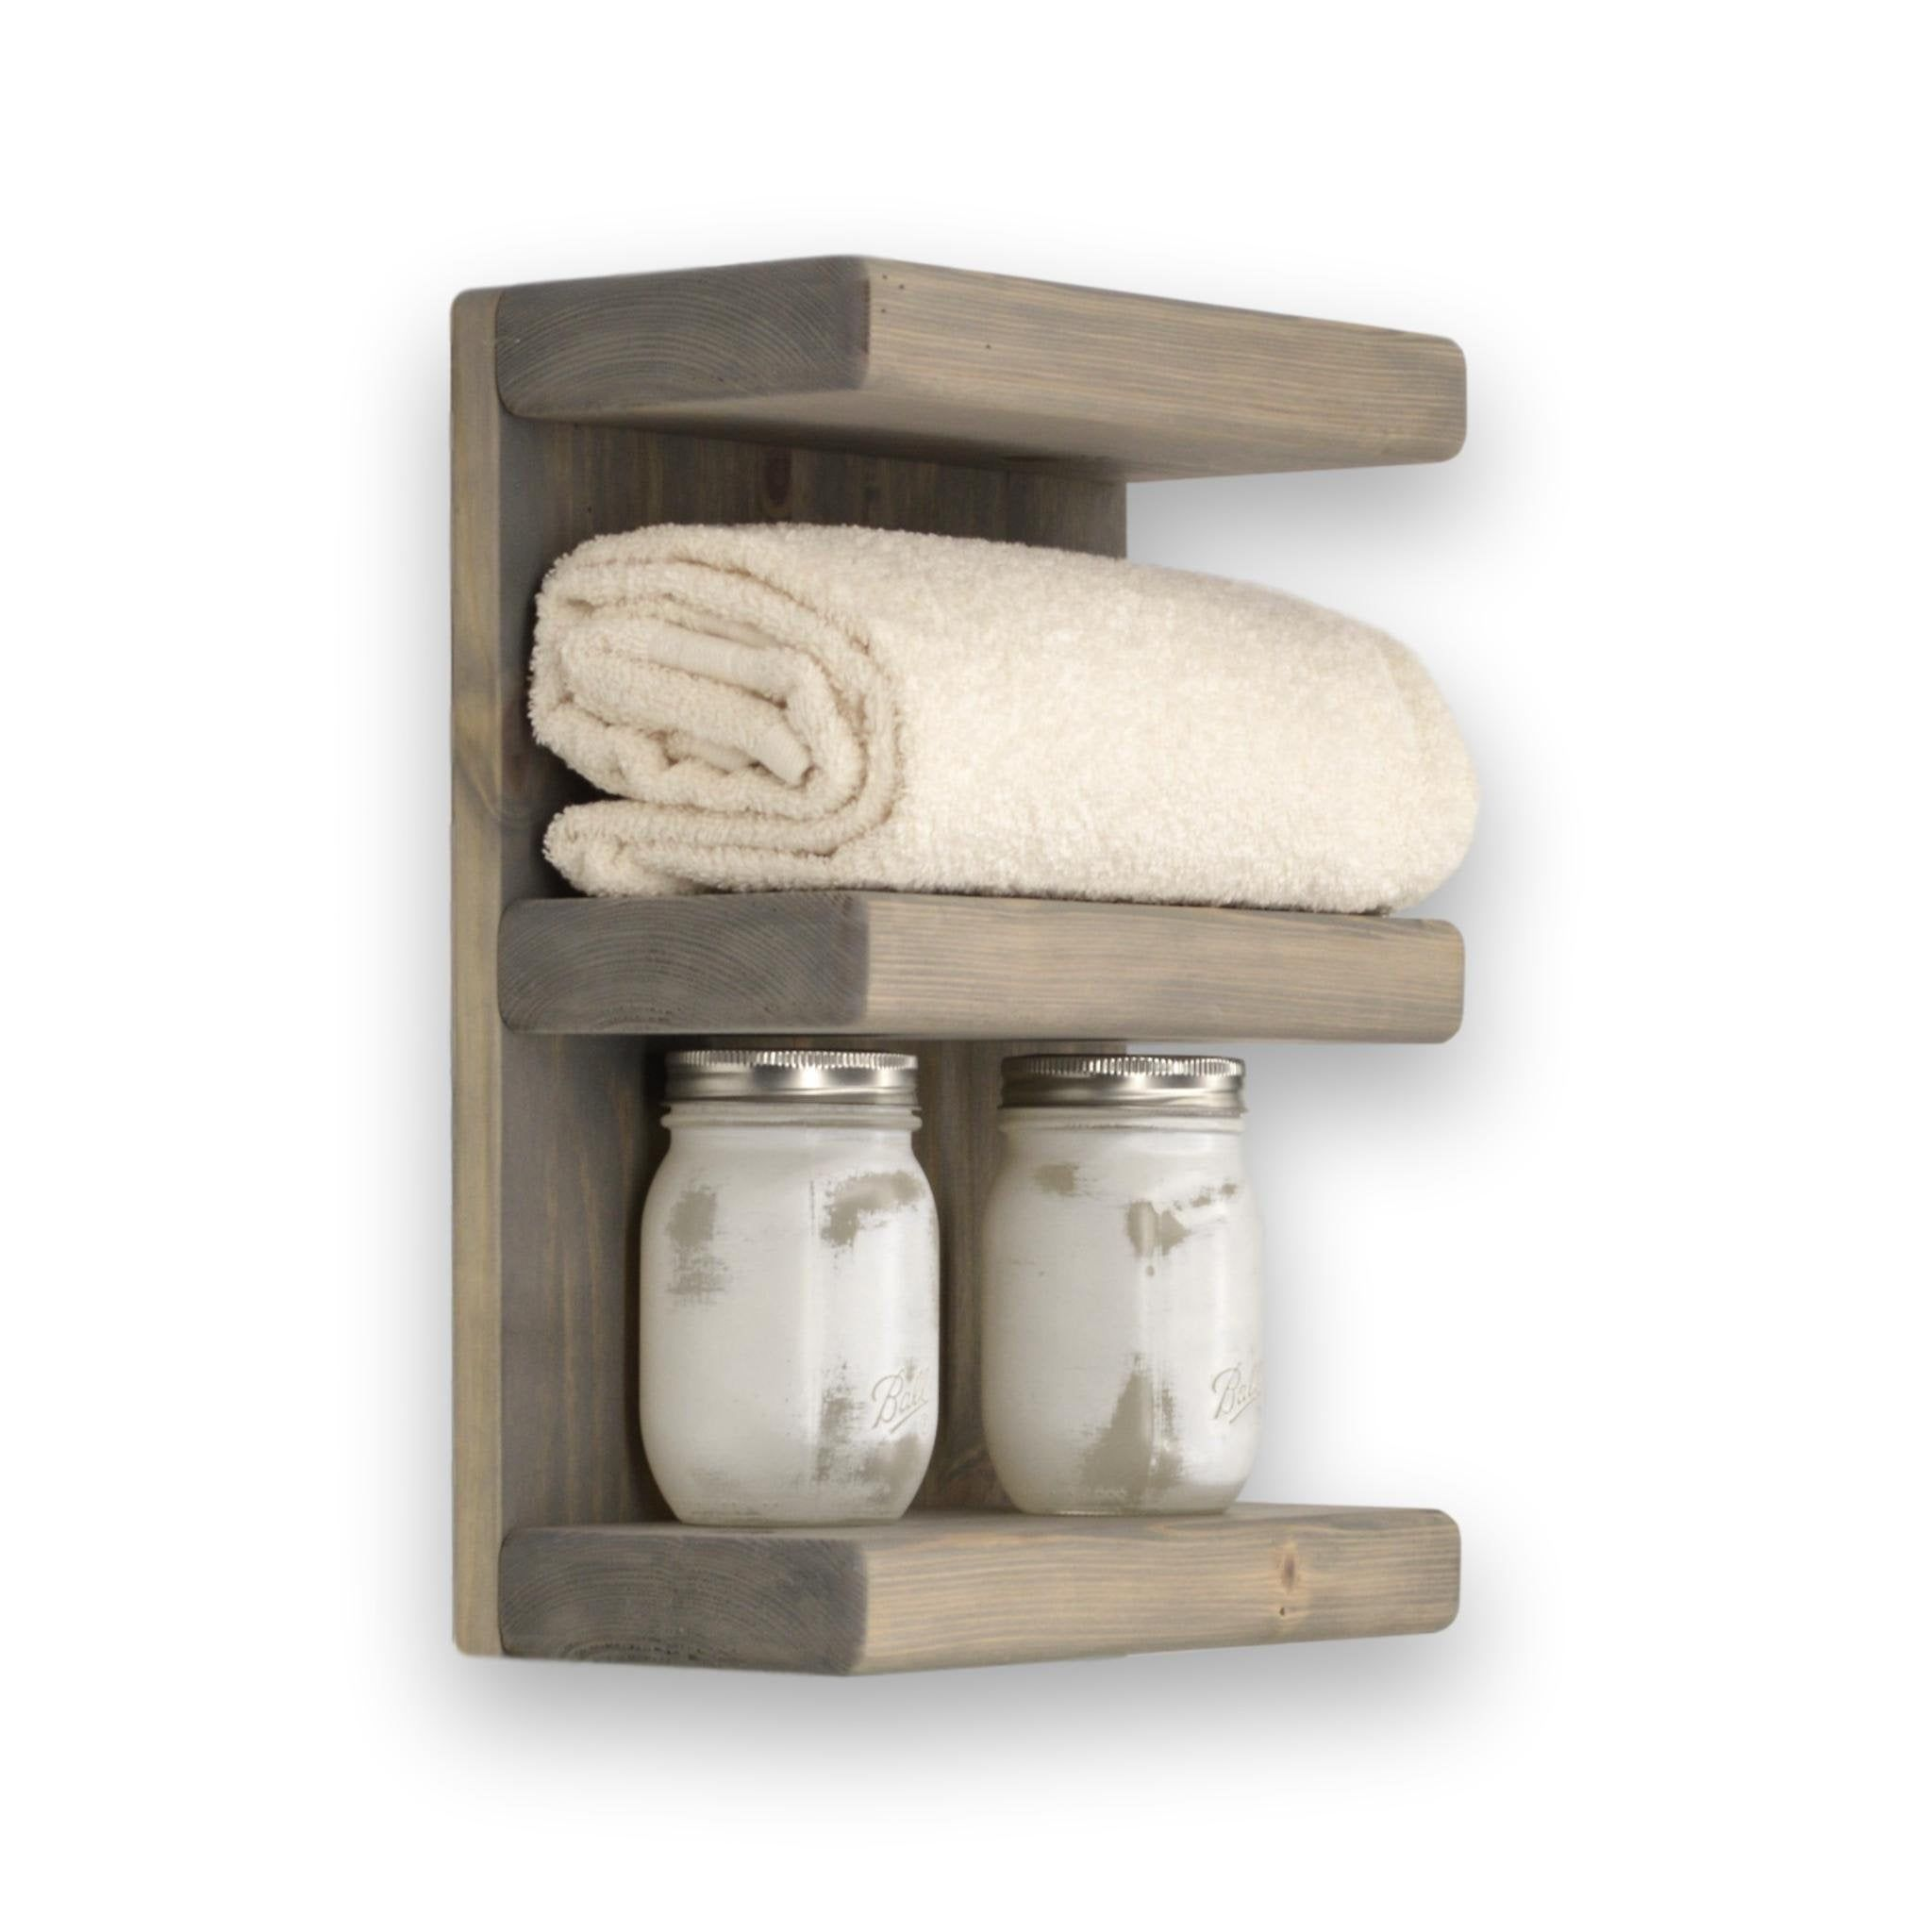 Three Tier Bathroom Shelf Bathroom Wall Shelves Wall Shelves